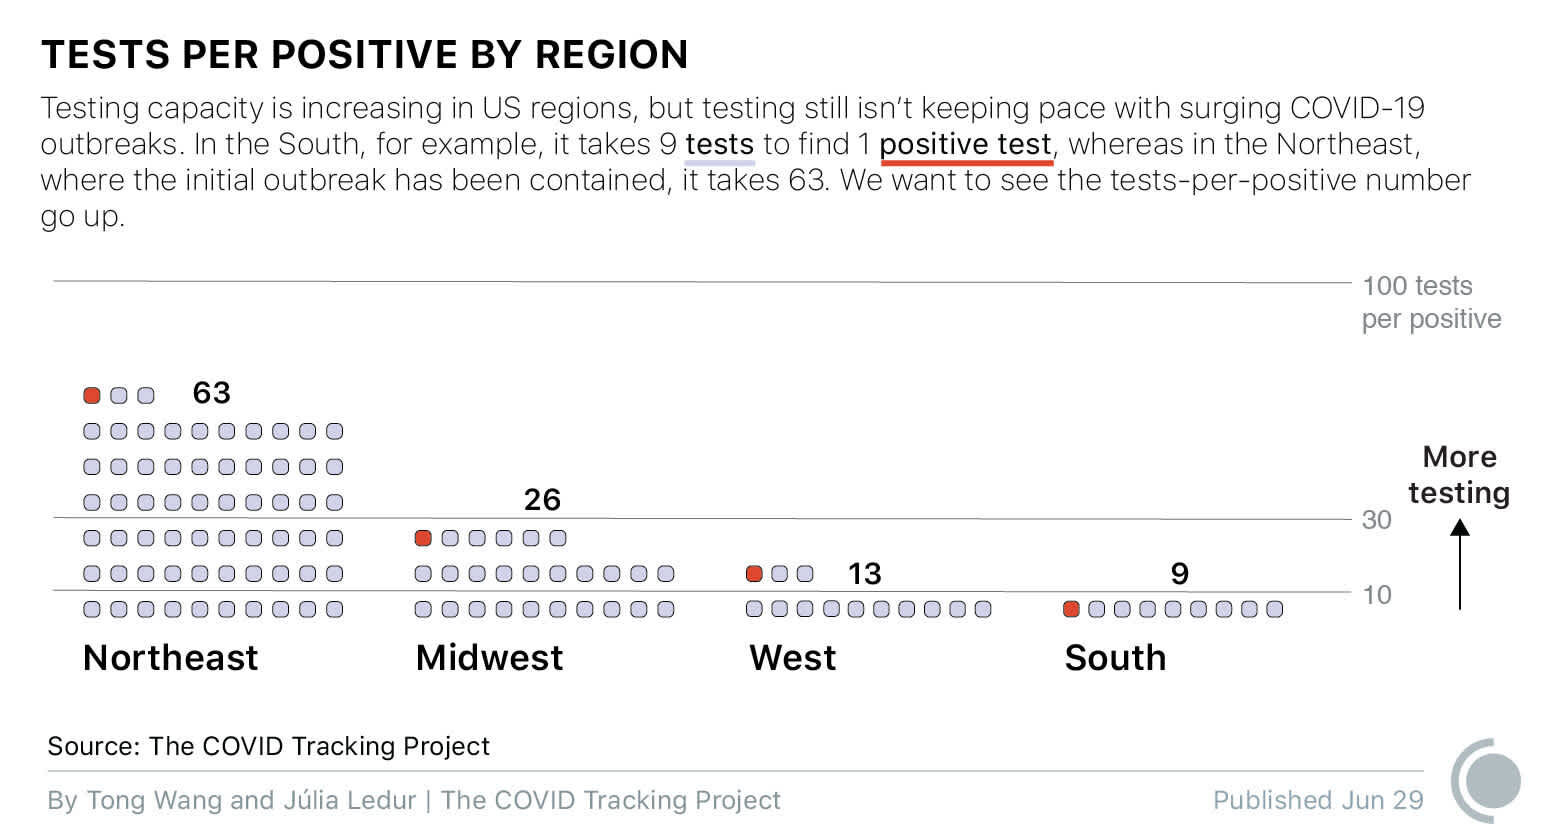 A dot graph showing the current tests per positives for each region of the United States. In the Northeast, it's 63 tests per positive; in the Midwest, it's 26 tests per positive; in the West, it's 13 tests per positive; in the South, it's only 9 tests per positive.